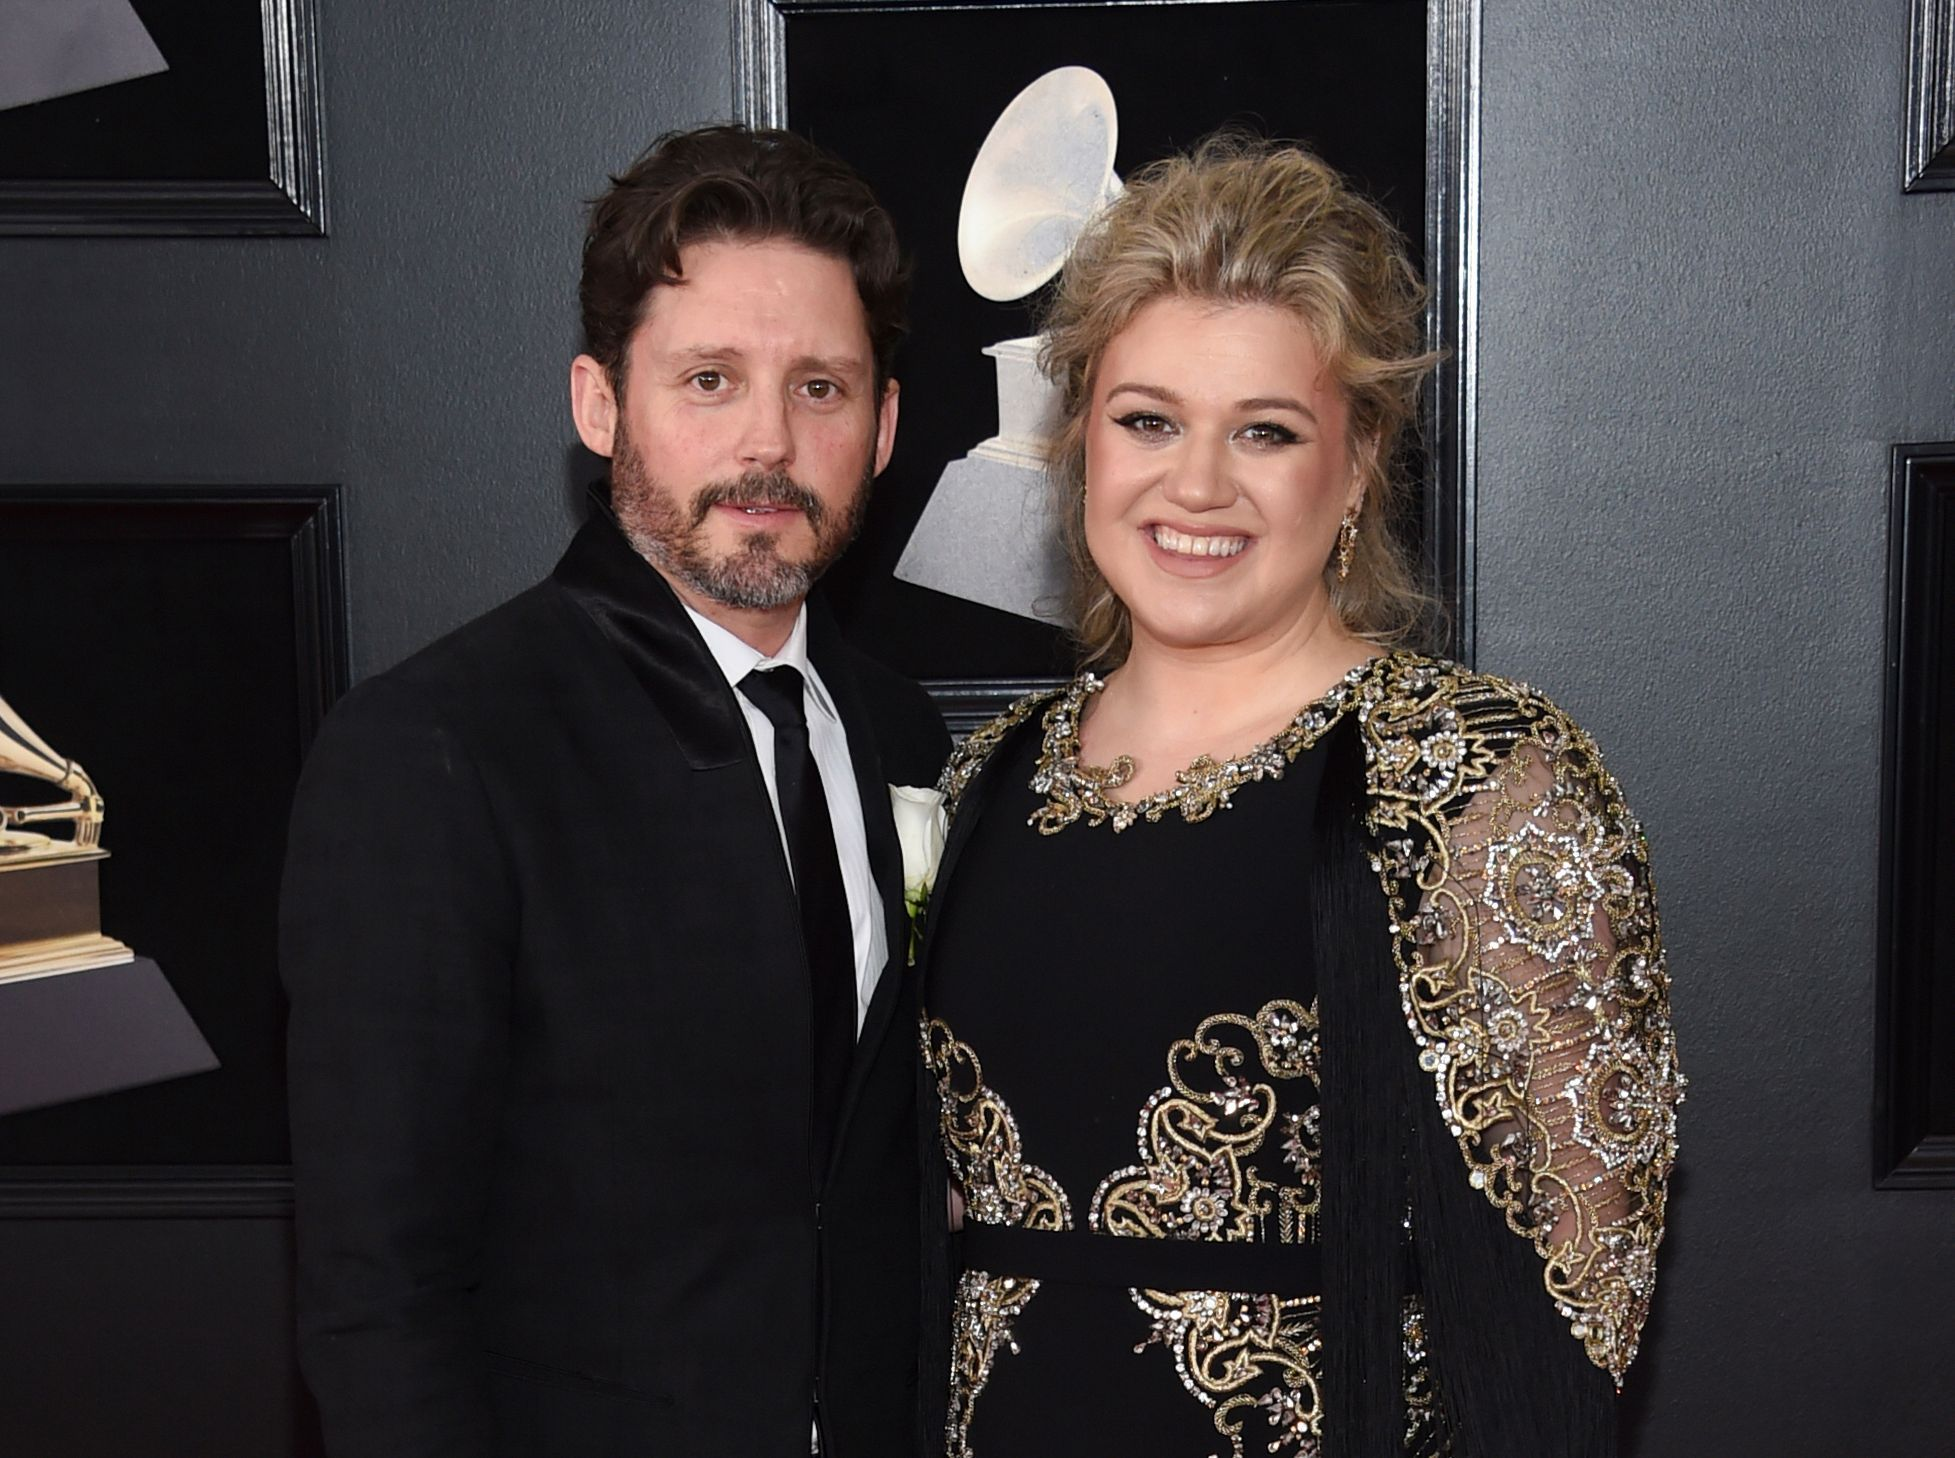 Kelly Clarkson Says She Can't Even Imagine Tying The Knot Again Amid Difficult Divorce!